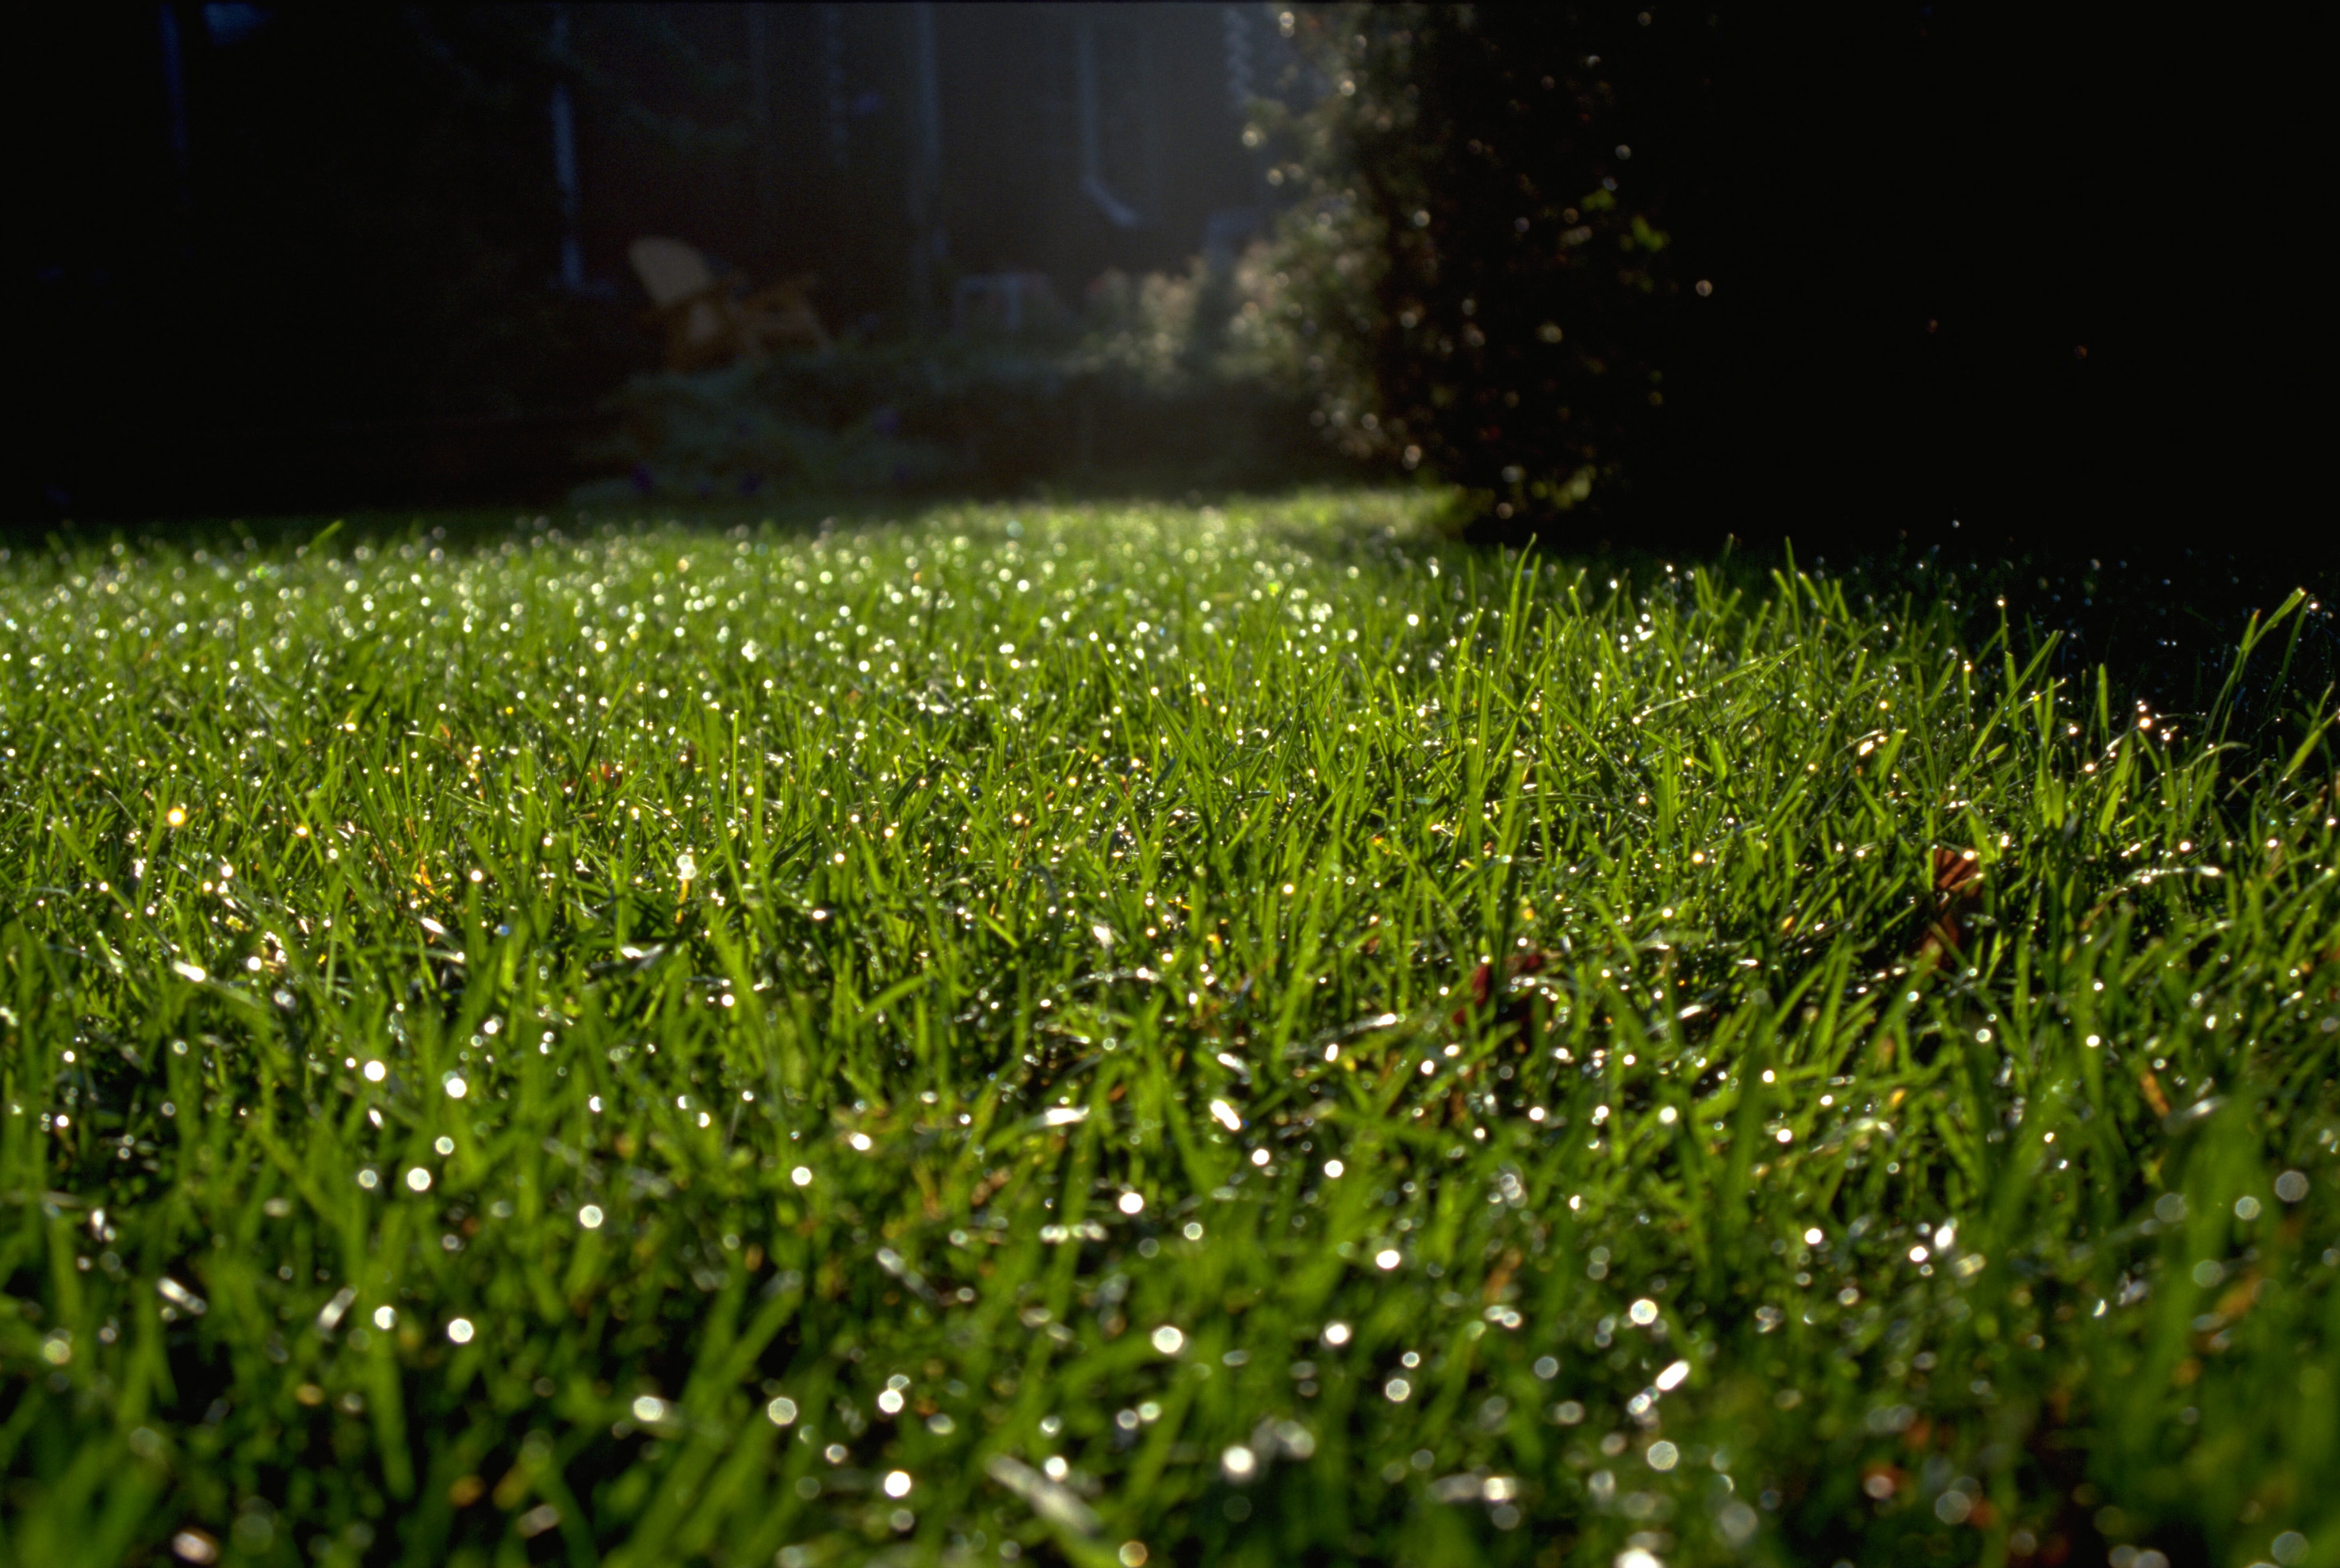 Lawn calendar | Space for life